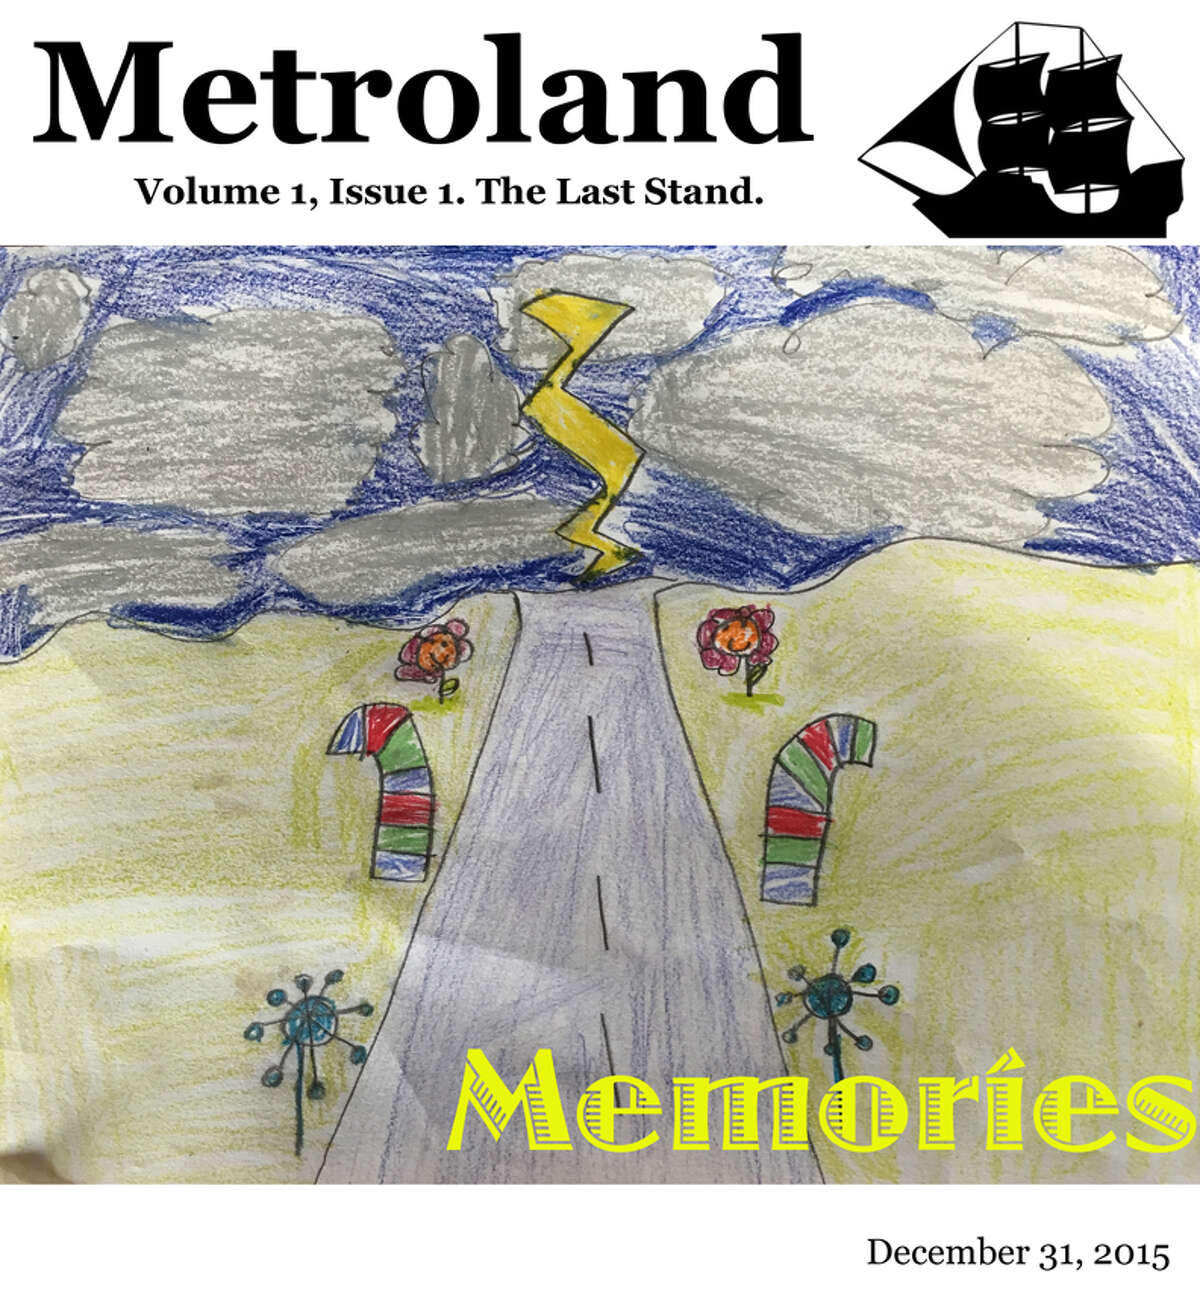 """The guerrilla final issue of Metroland, """"The Last Stand,"""" was published online Dec. 31, 2015 by staffers who worked on it for free. (Drawing by Betsey Colligan, age 8)"""